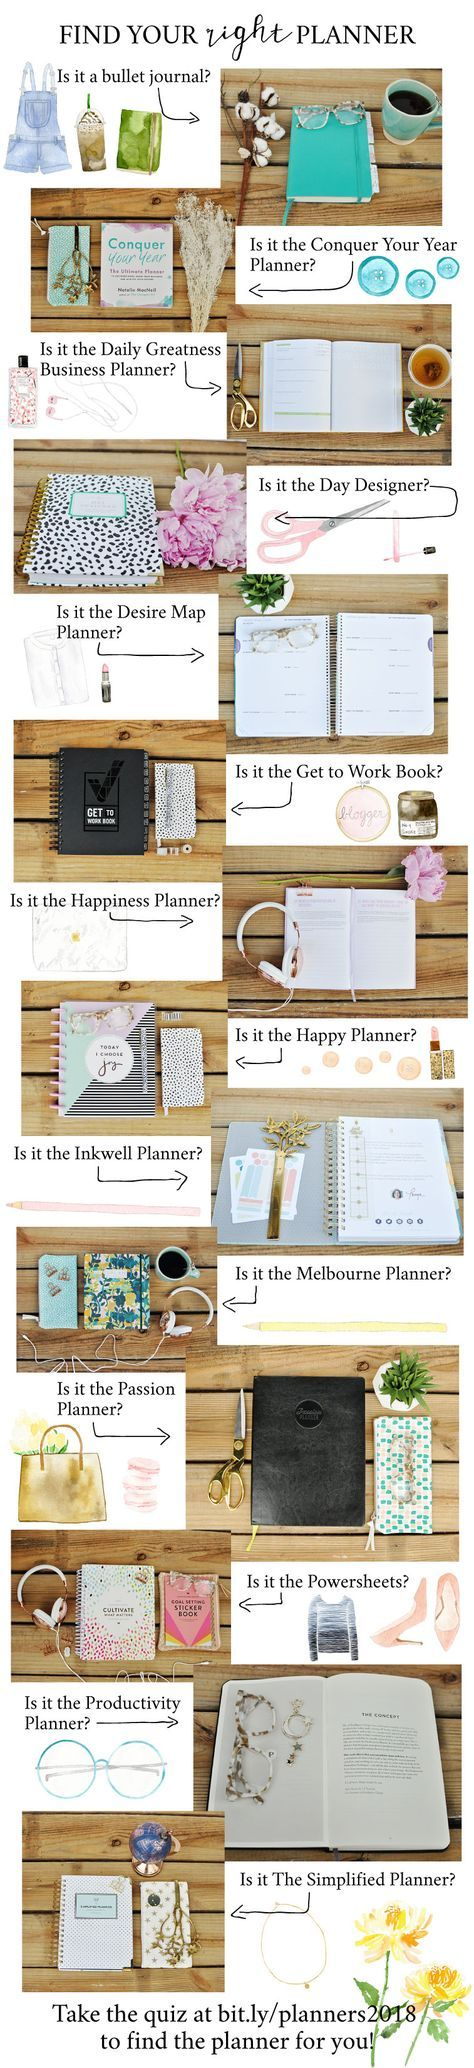 Win a 2018 Powersheets and Planner Bundle!   Blacksburg Belle Go to HTTP://WWW.BIT.LY/PLANNERS2018 to see the top 14 planners for entrepreneurs for 2018 and take a quiz to find the right planner for you!